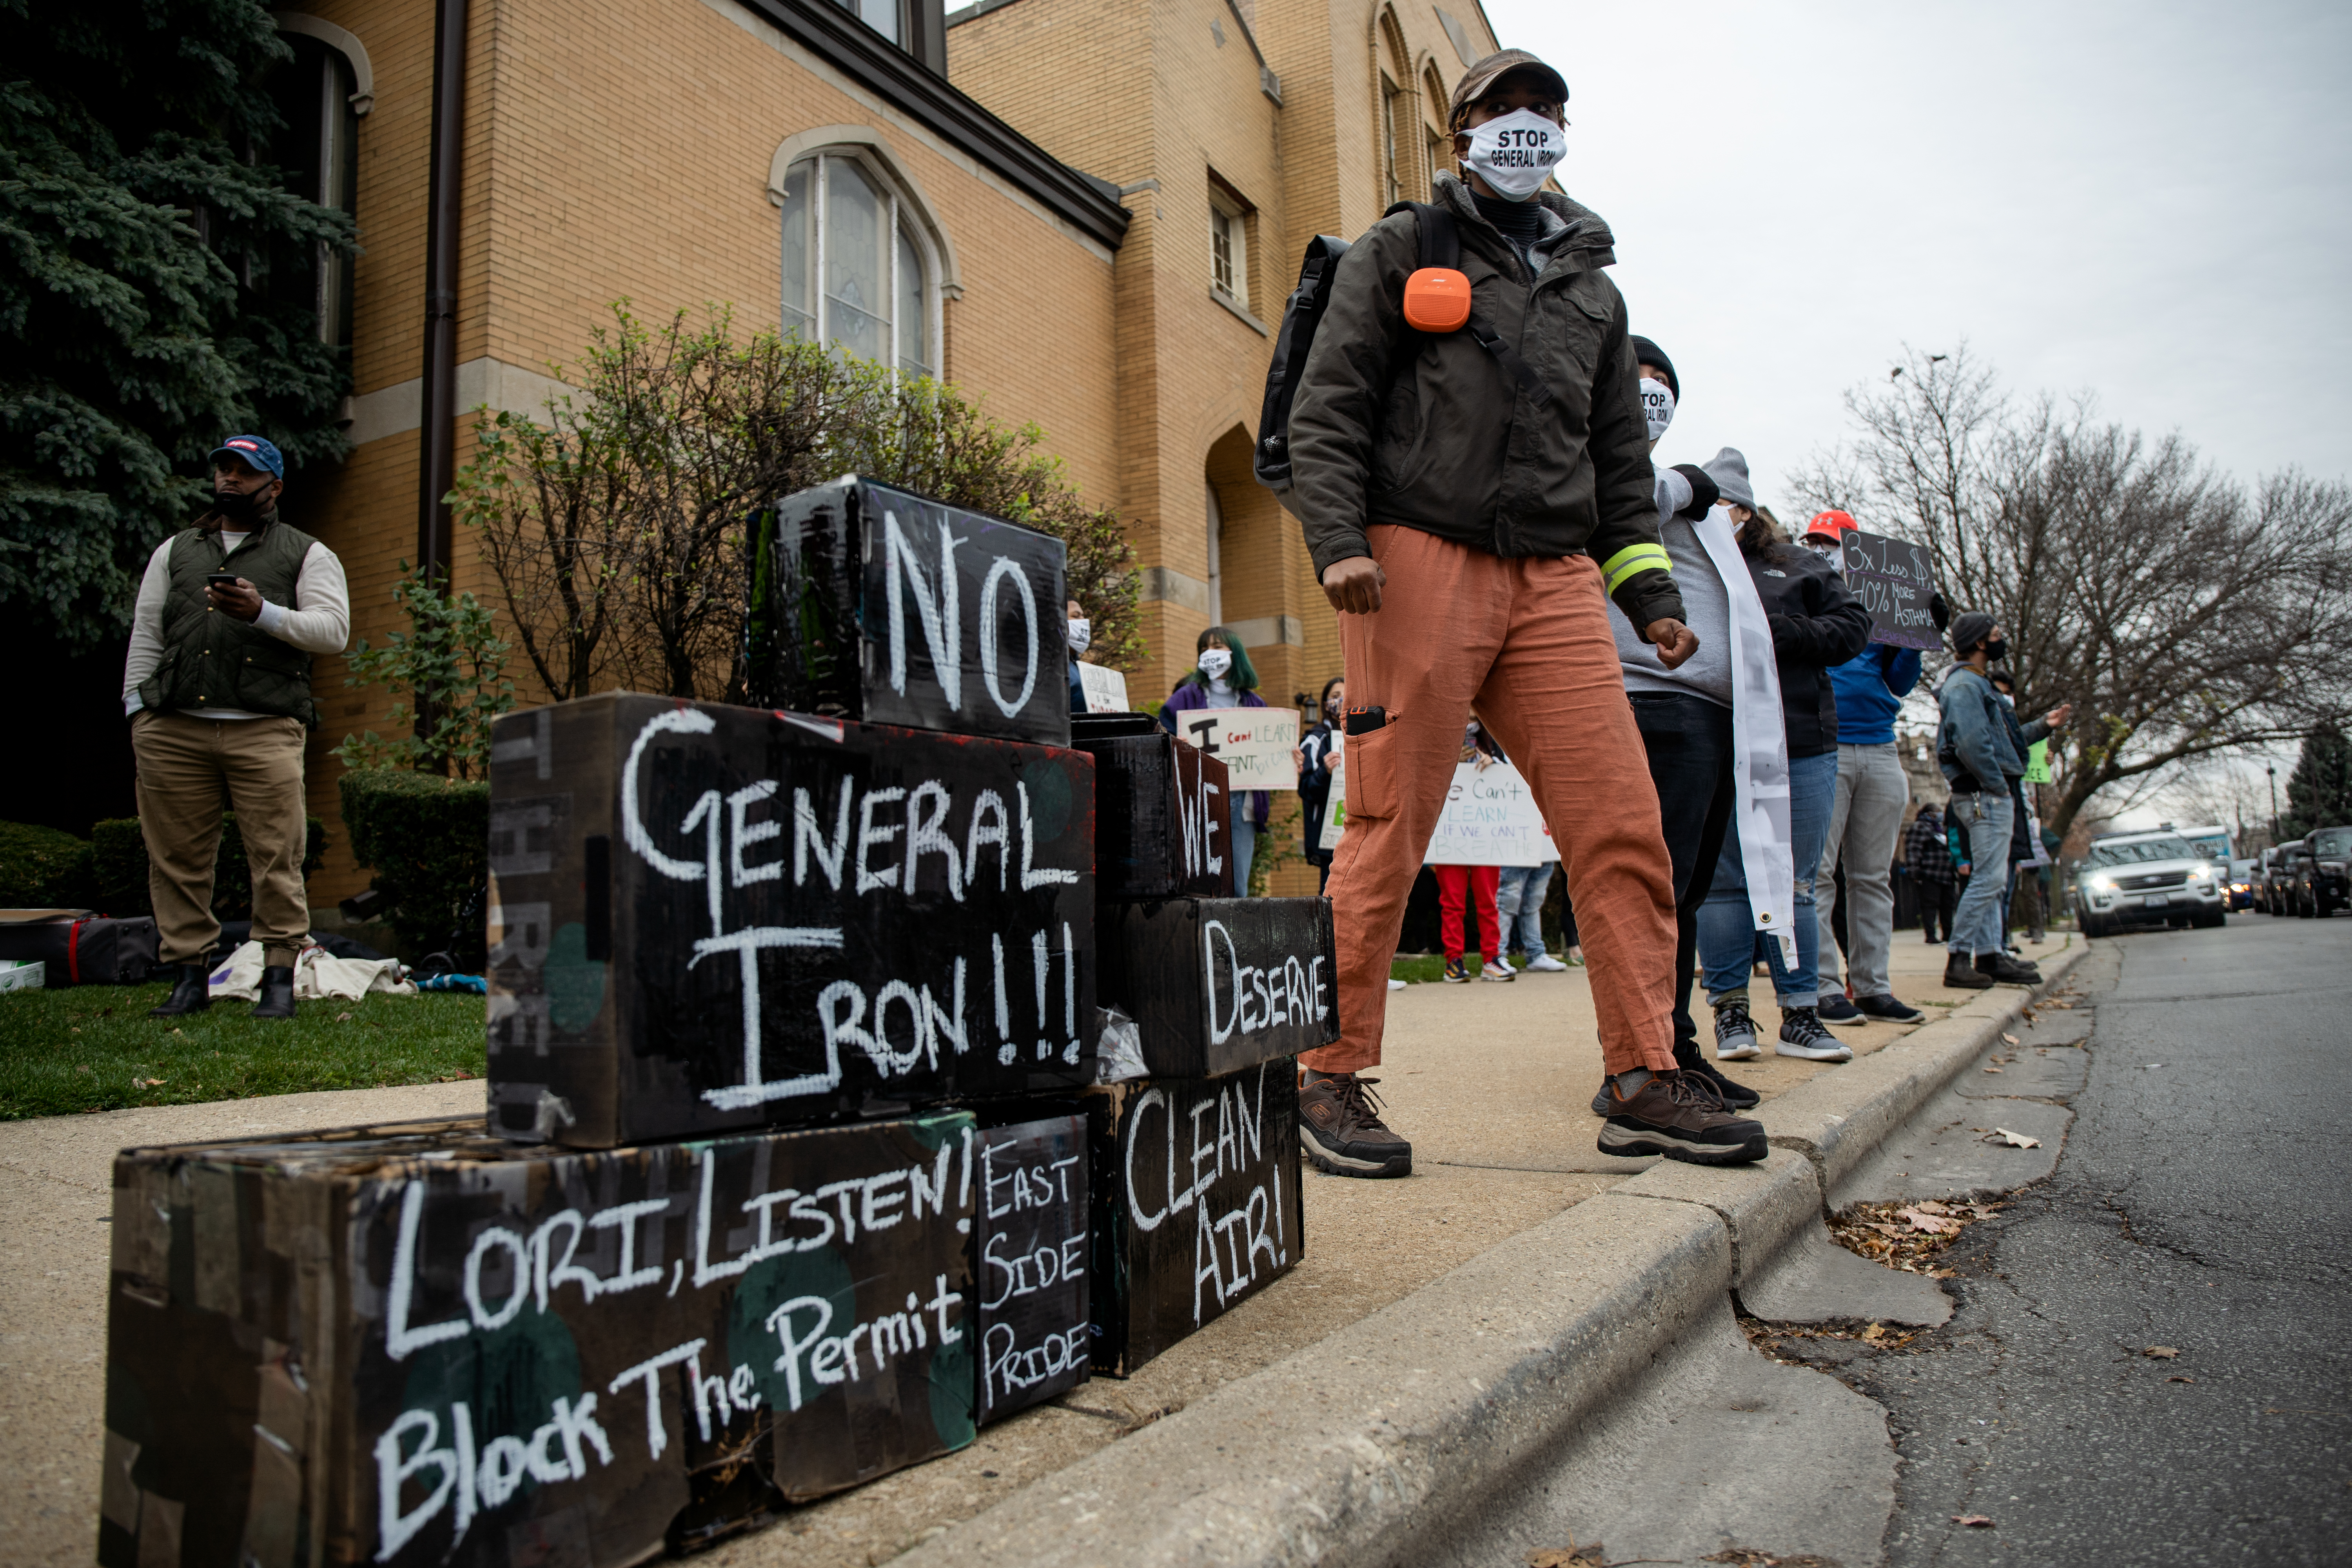 A protester attends a rally demanding Mayor Lori Lightfoot deny the final permit that will allow General Iron to move from Lincoln Park, a mostly white neighborhood, to the Southeast Side, which has a mostly Latino population.